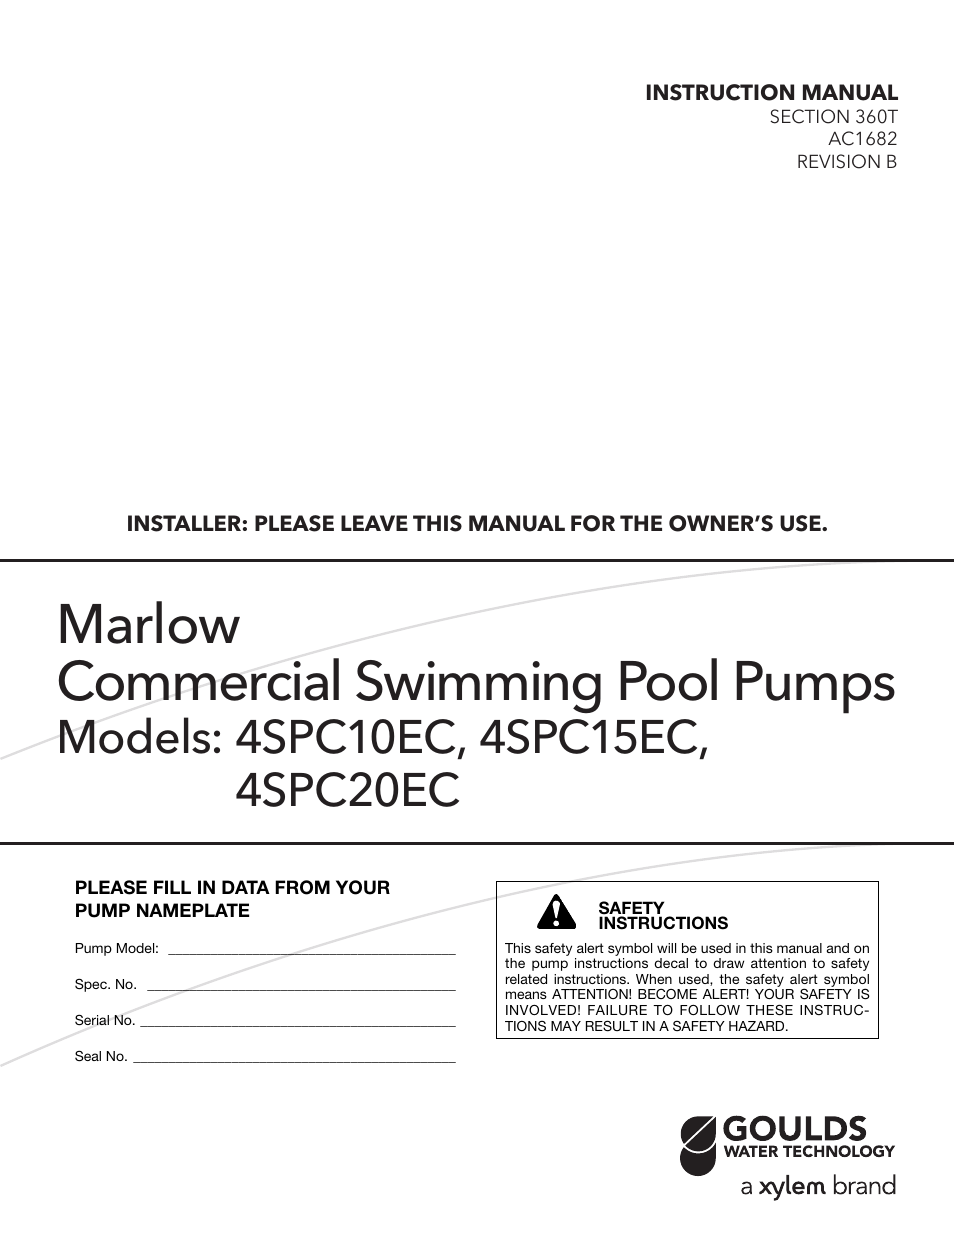 Xylem AC1682B Marlow Series Commercial Swimming Pool Pumps User Manual | 8  pages